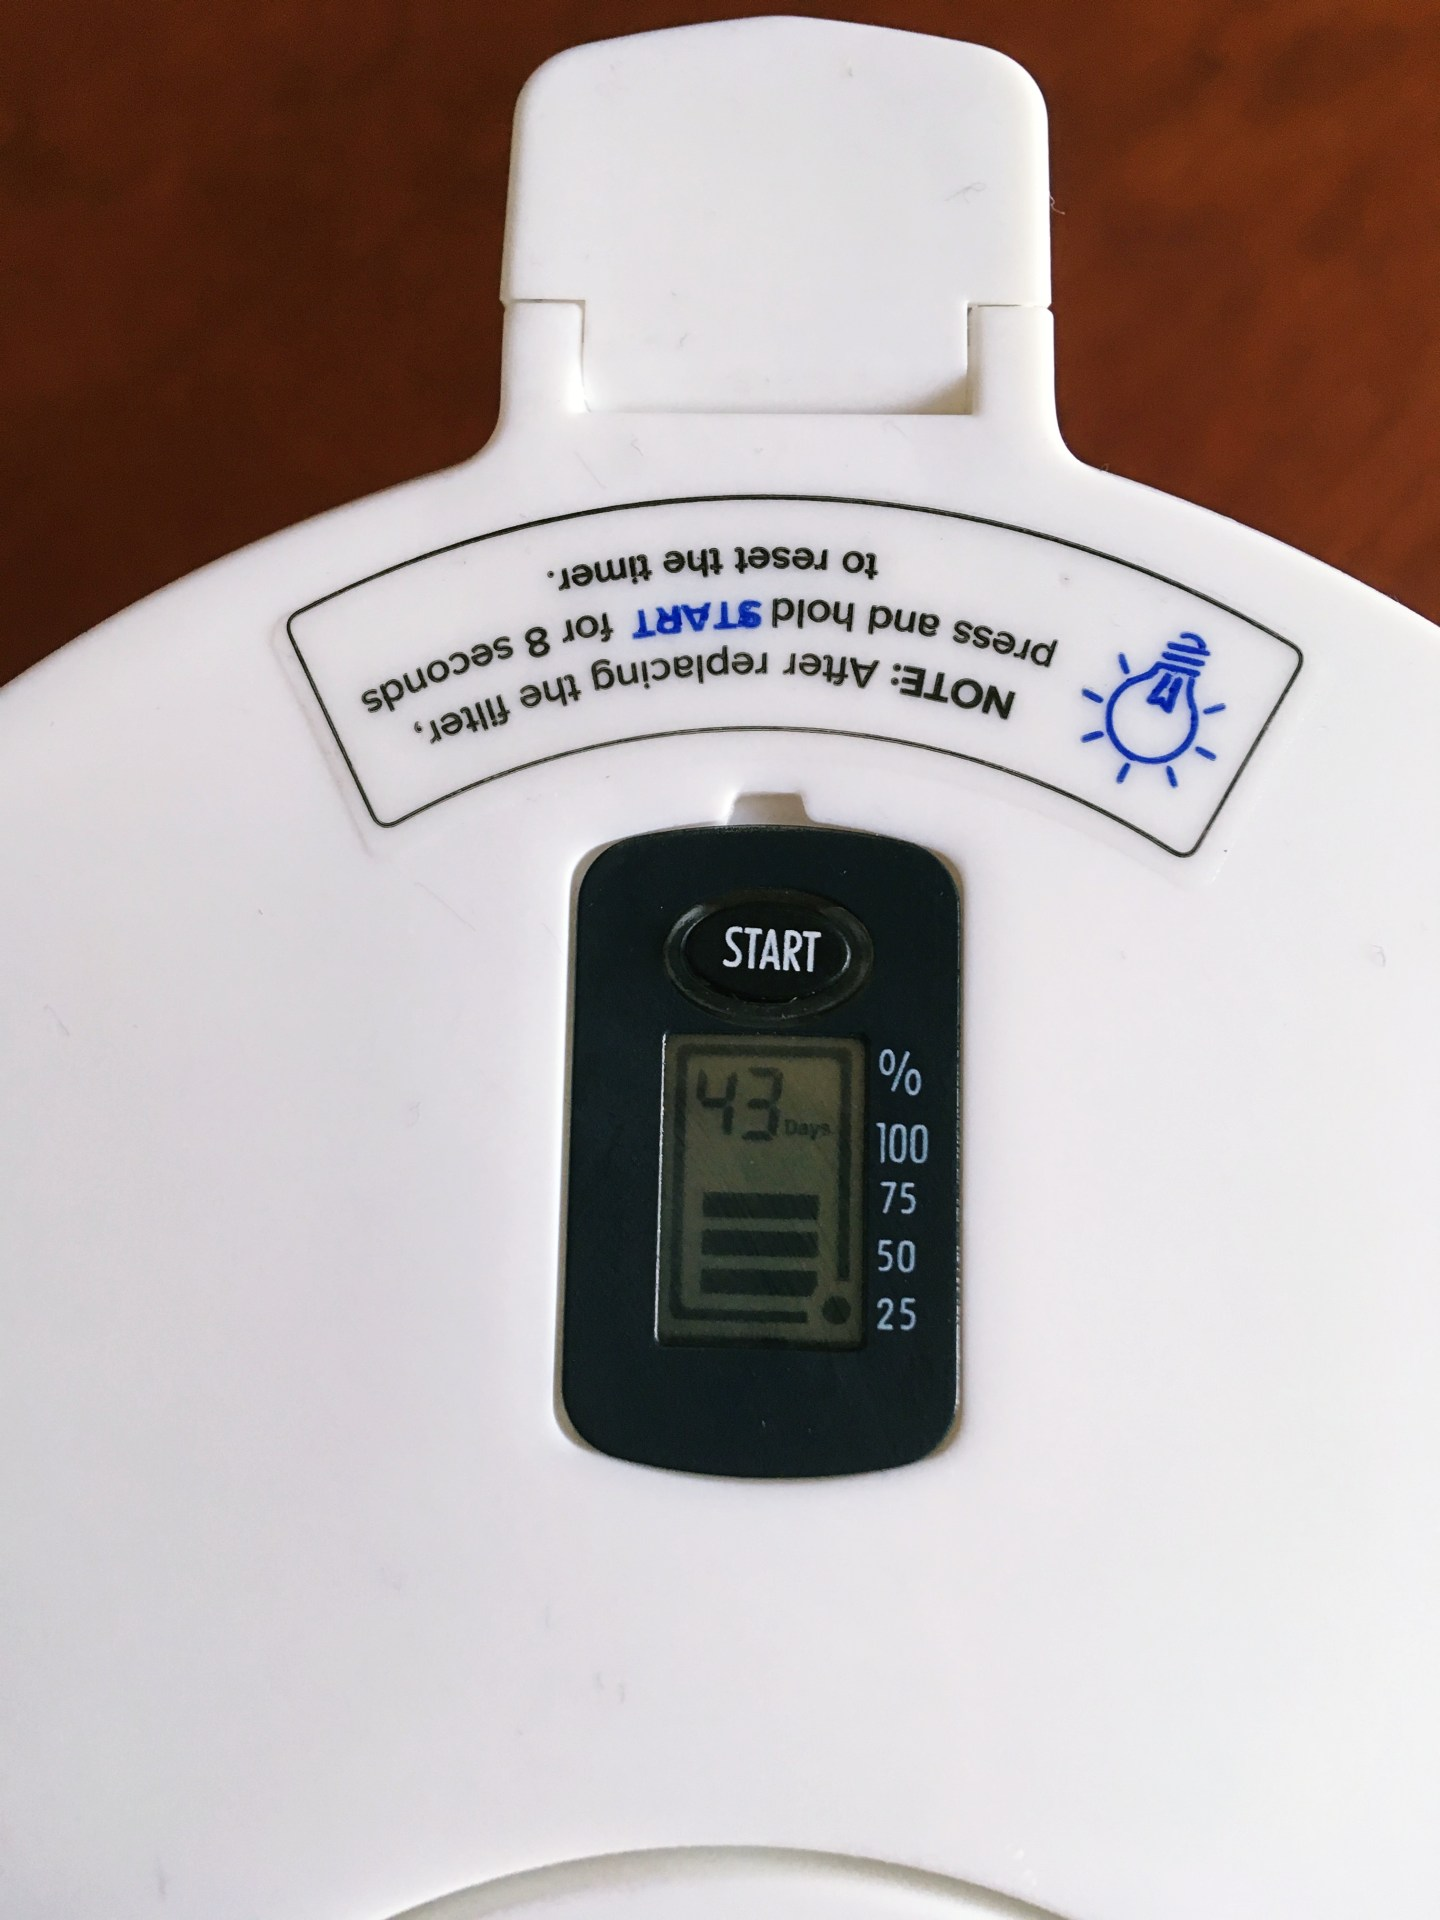 A photograph of the Levoit water filter jug digital display.